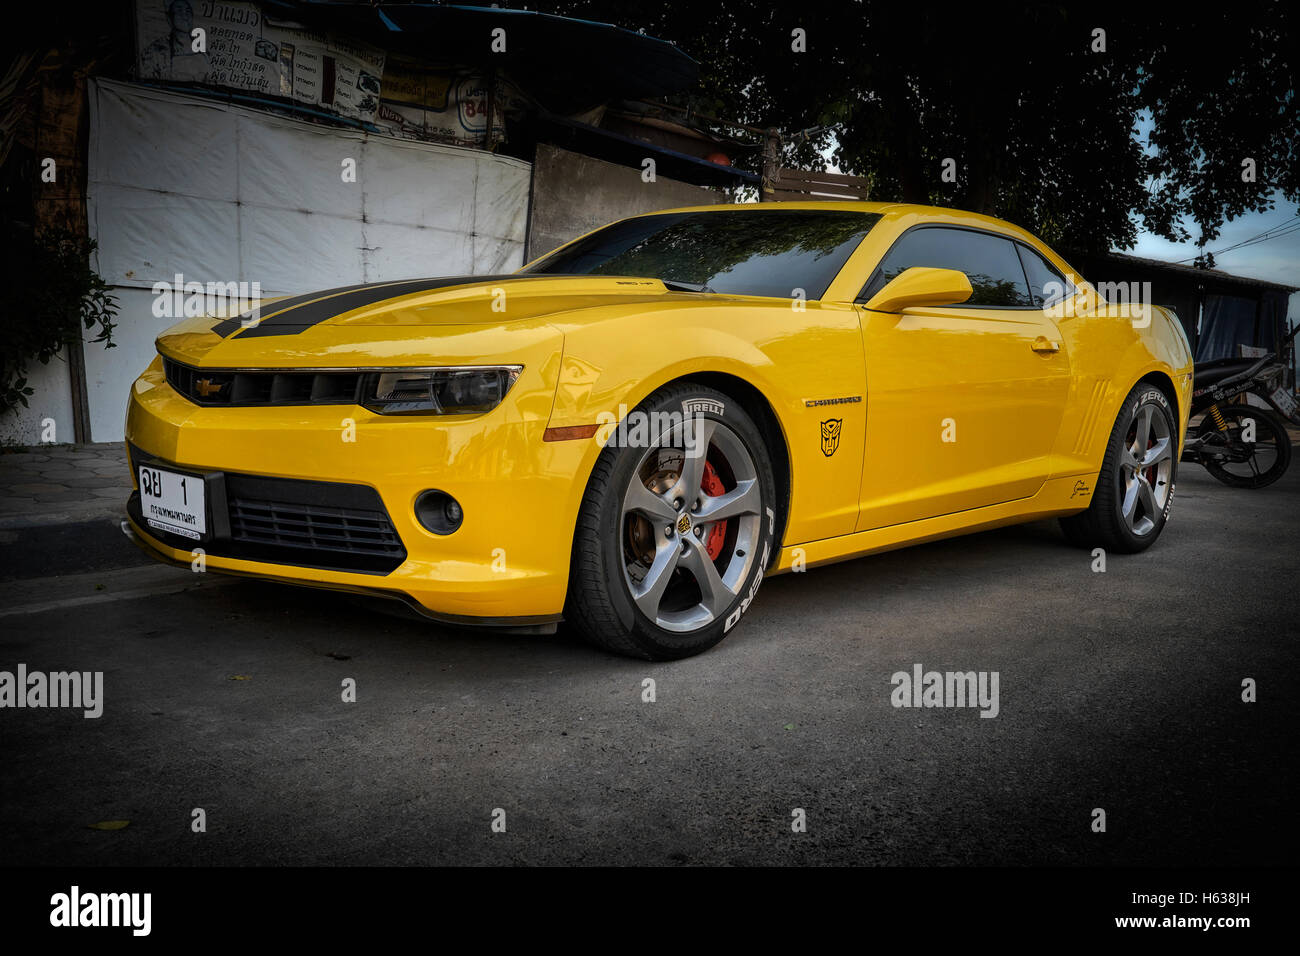 Chevrolet Camaro Zli 2017 Anniversary Model Stock Photo